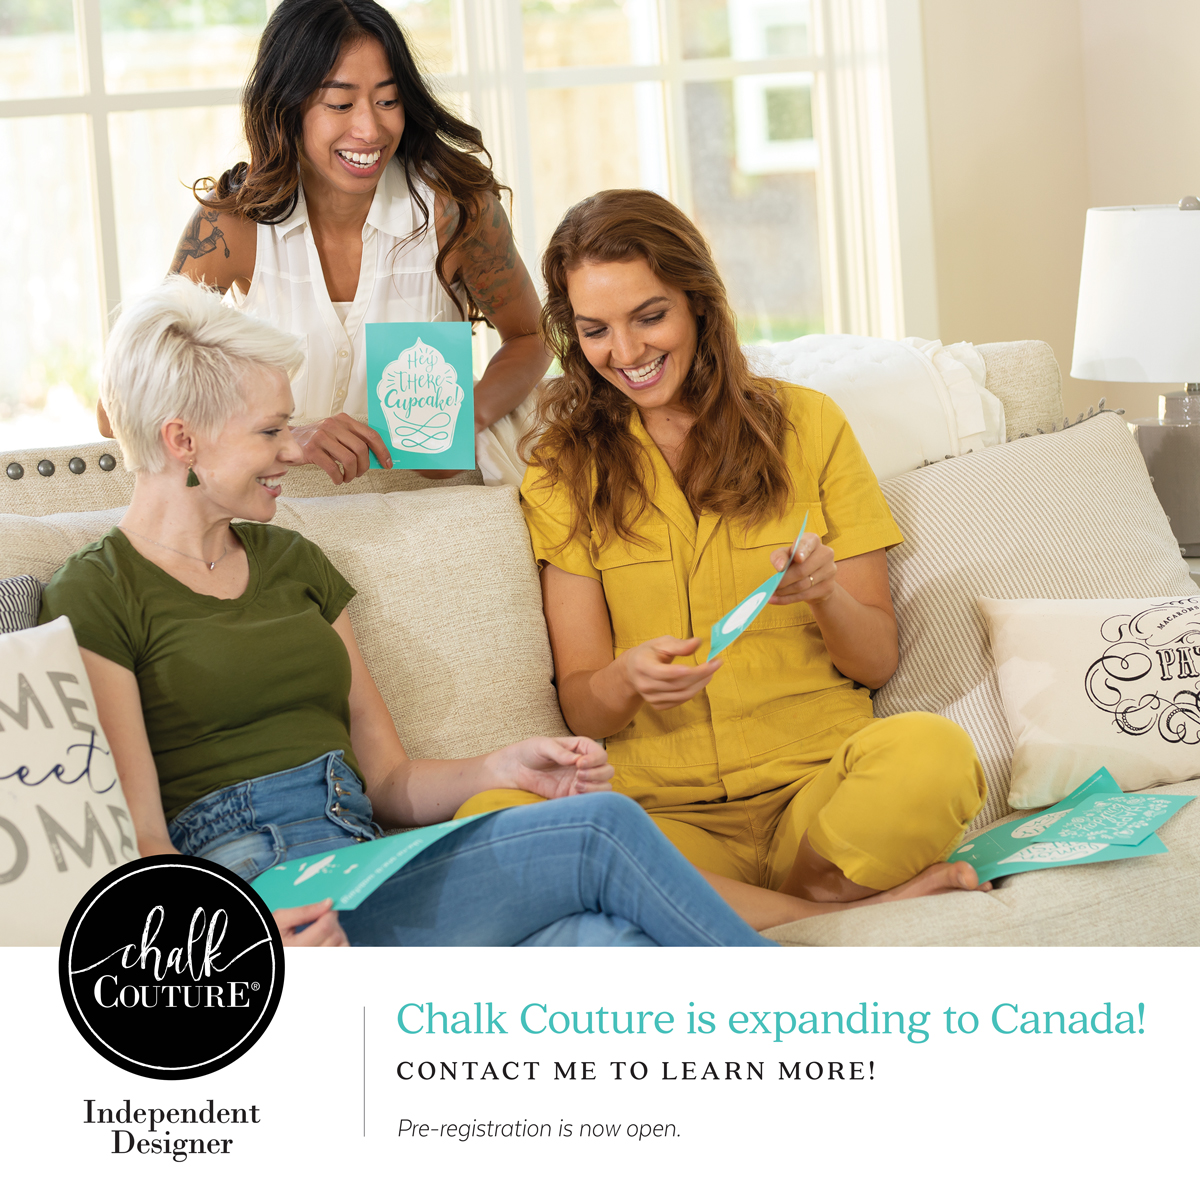 Chalk Couture Expands to Canada